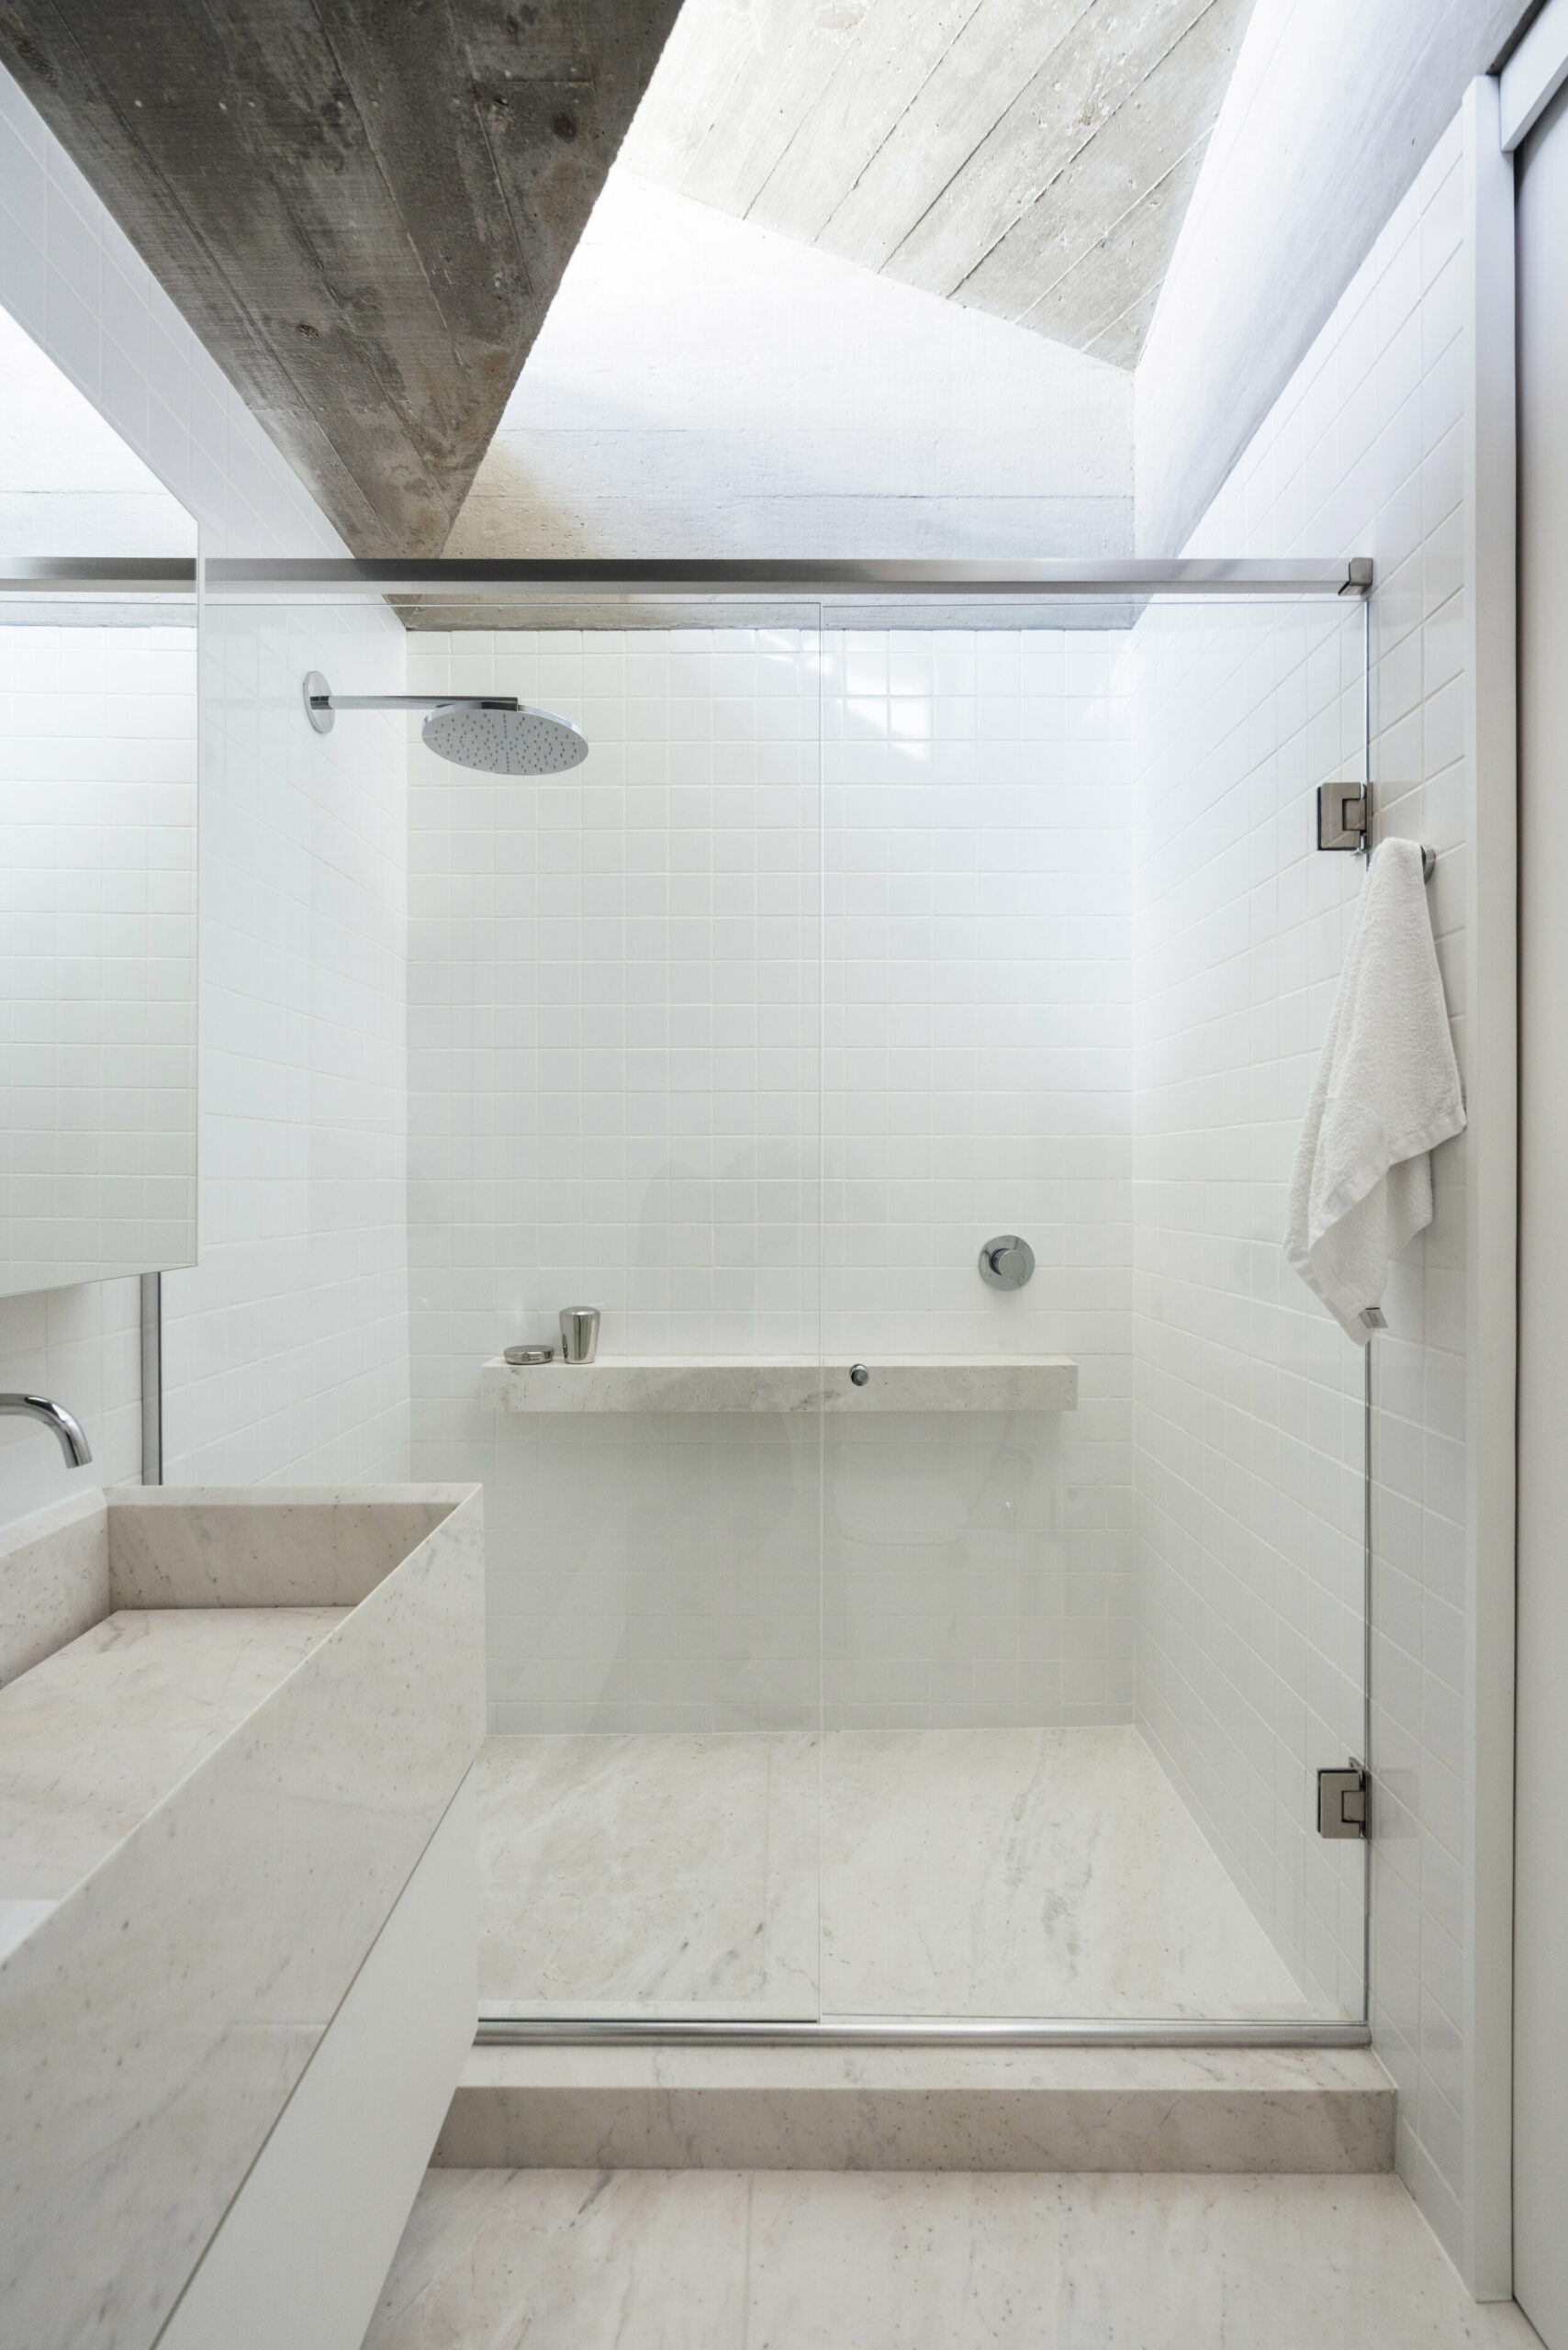 The bathrooms have bright and subdued designs with elegant marble accents and glass partitions